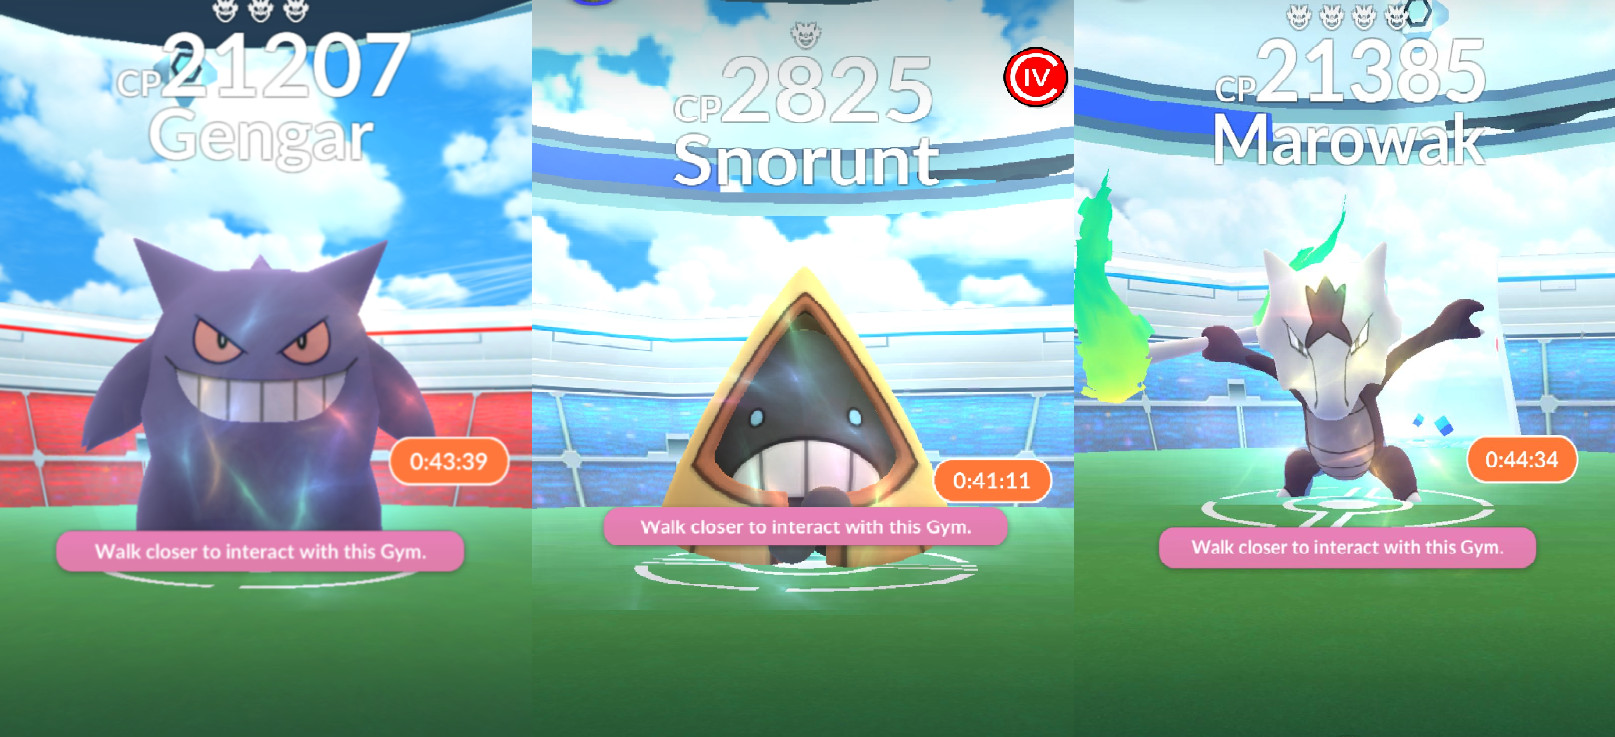 Photo of Pokemon Go New Raid Bosses Wave, Altered Forme Giratina as T5